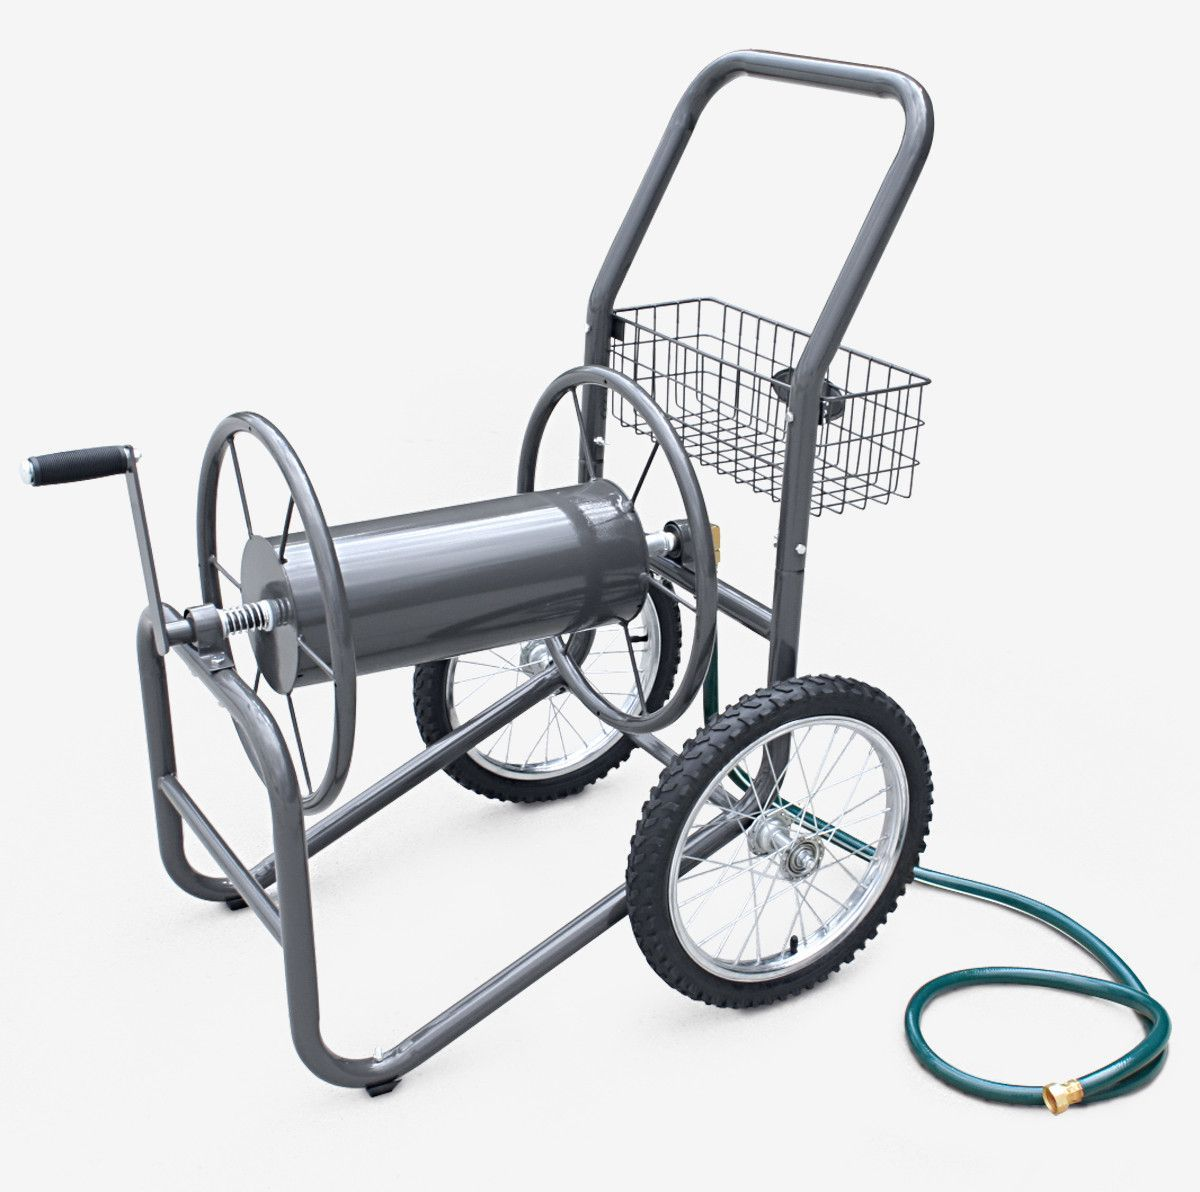 Industrial 2 Wheel Steel Hose Reel Cart | Hose reel, Industrial and ...